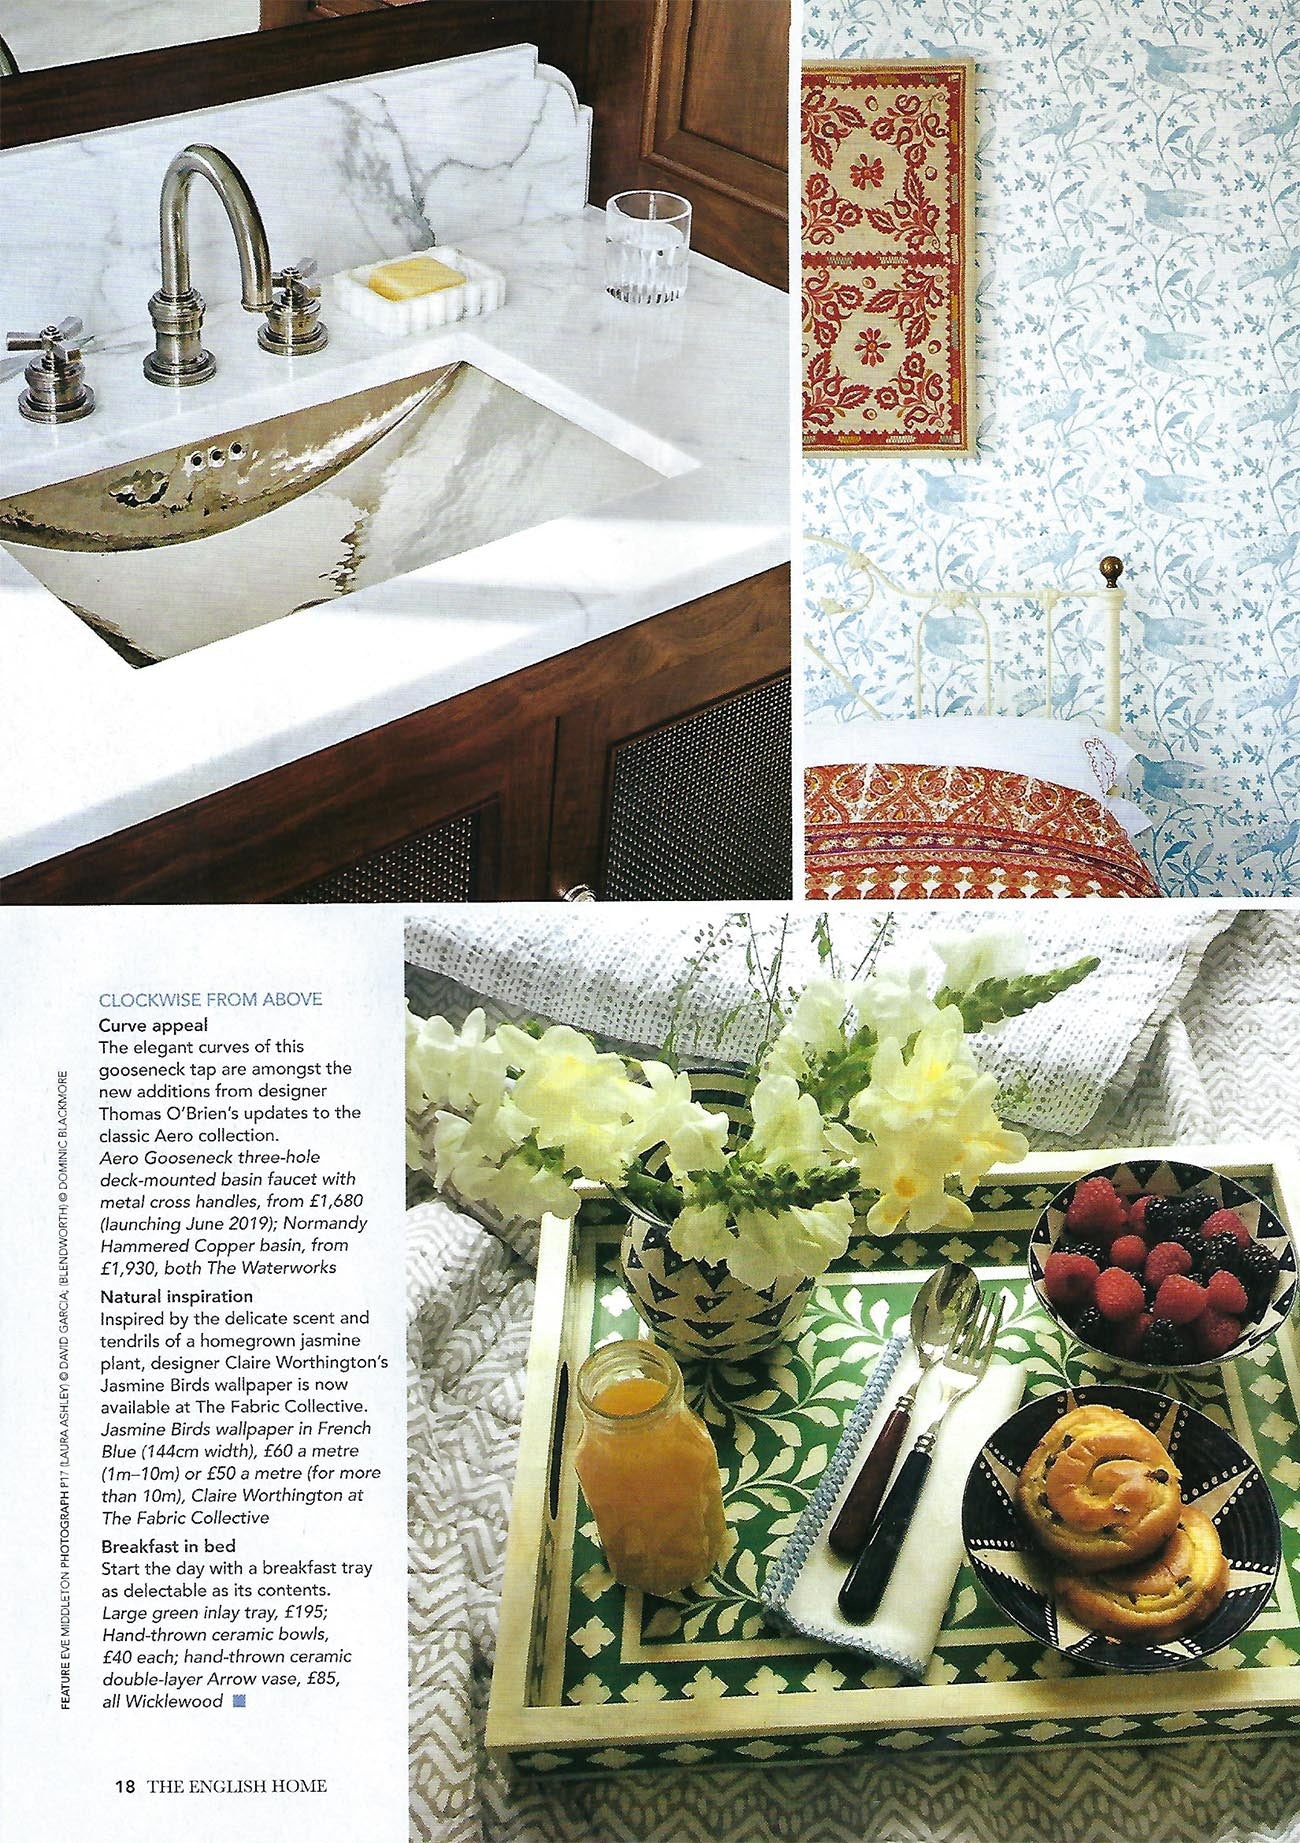 Wicklewood's green bone and wood inlay tray featured in The English Homes May 2019 issue